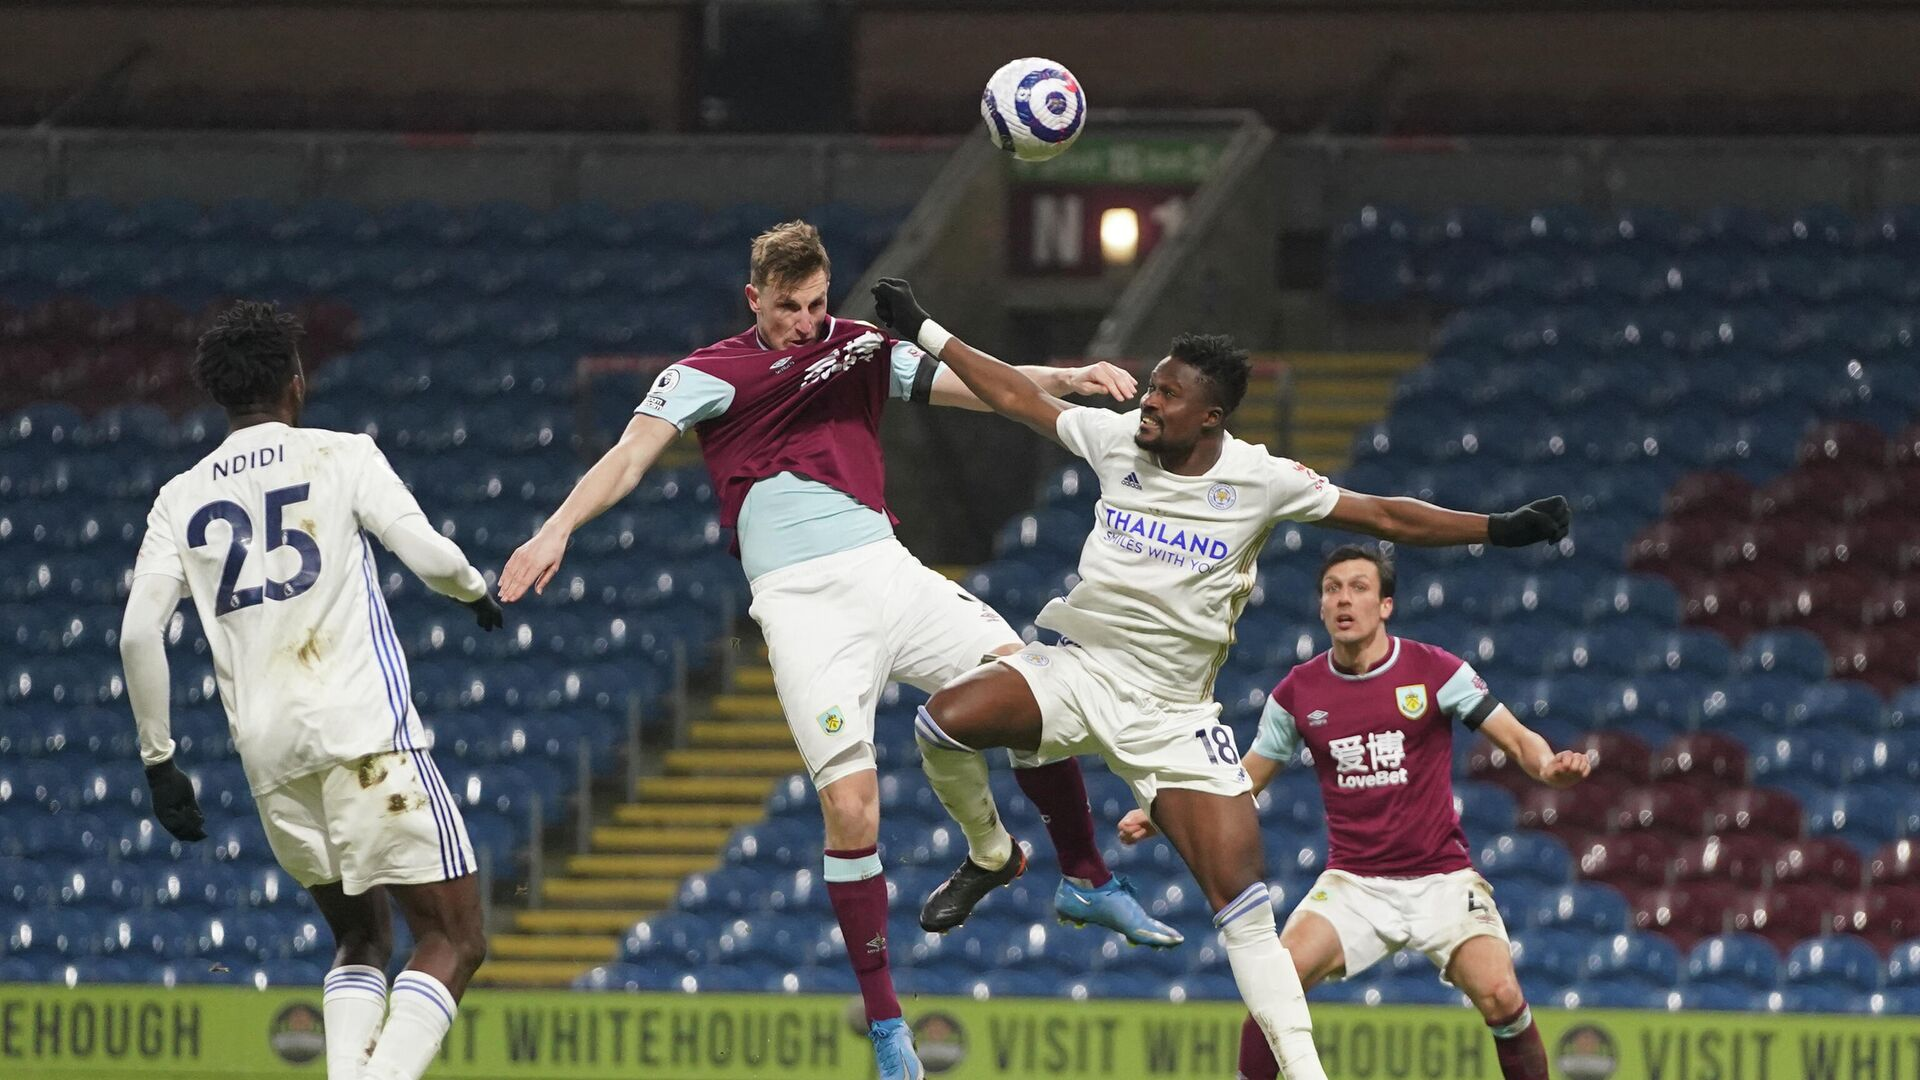 Burnley's New Zealand striker Chris Wood (2L) heads the ball as Leicester City's Ghanaian midfielder Daniel Amartey (2R) tries to defend during the English Premier League football match between Burnley and Leicester City at Turf Moor in Burnley, north west England on March 3, 2021. (Photo by Jon Super / POOL / AFP) / RESTRICTED TO EDITORIAL USE. No use with unauthorized audio, video, data, fixture lists, club/league logos or 'live' services. Online in-match use limited to 120 images. An additional 40 images may be used in extra time. No video emulation. Social media in-match use limited to 120 images. An additional 40 images may be used in extra time. No use in betting publications, games or single club/league/player publications. /  - РИА Новости, 1920, 03.03.2021